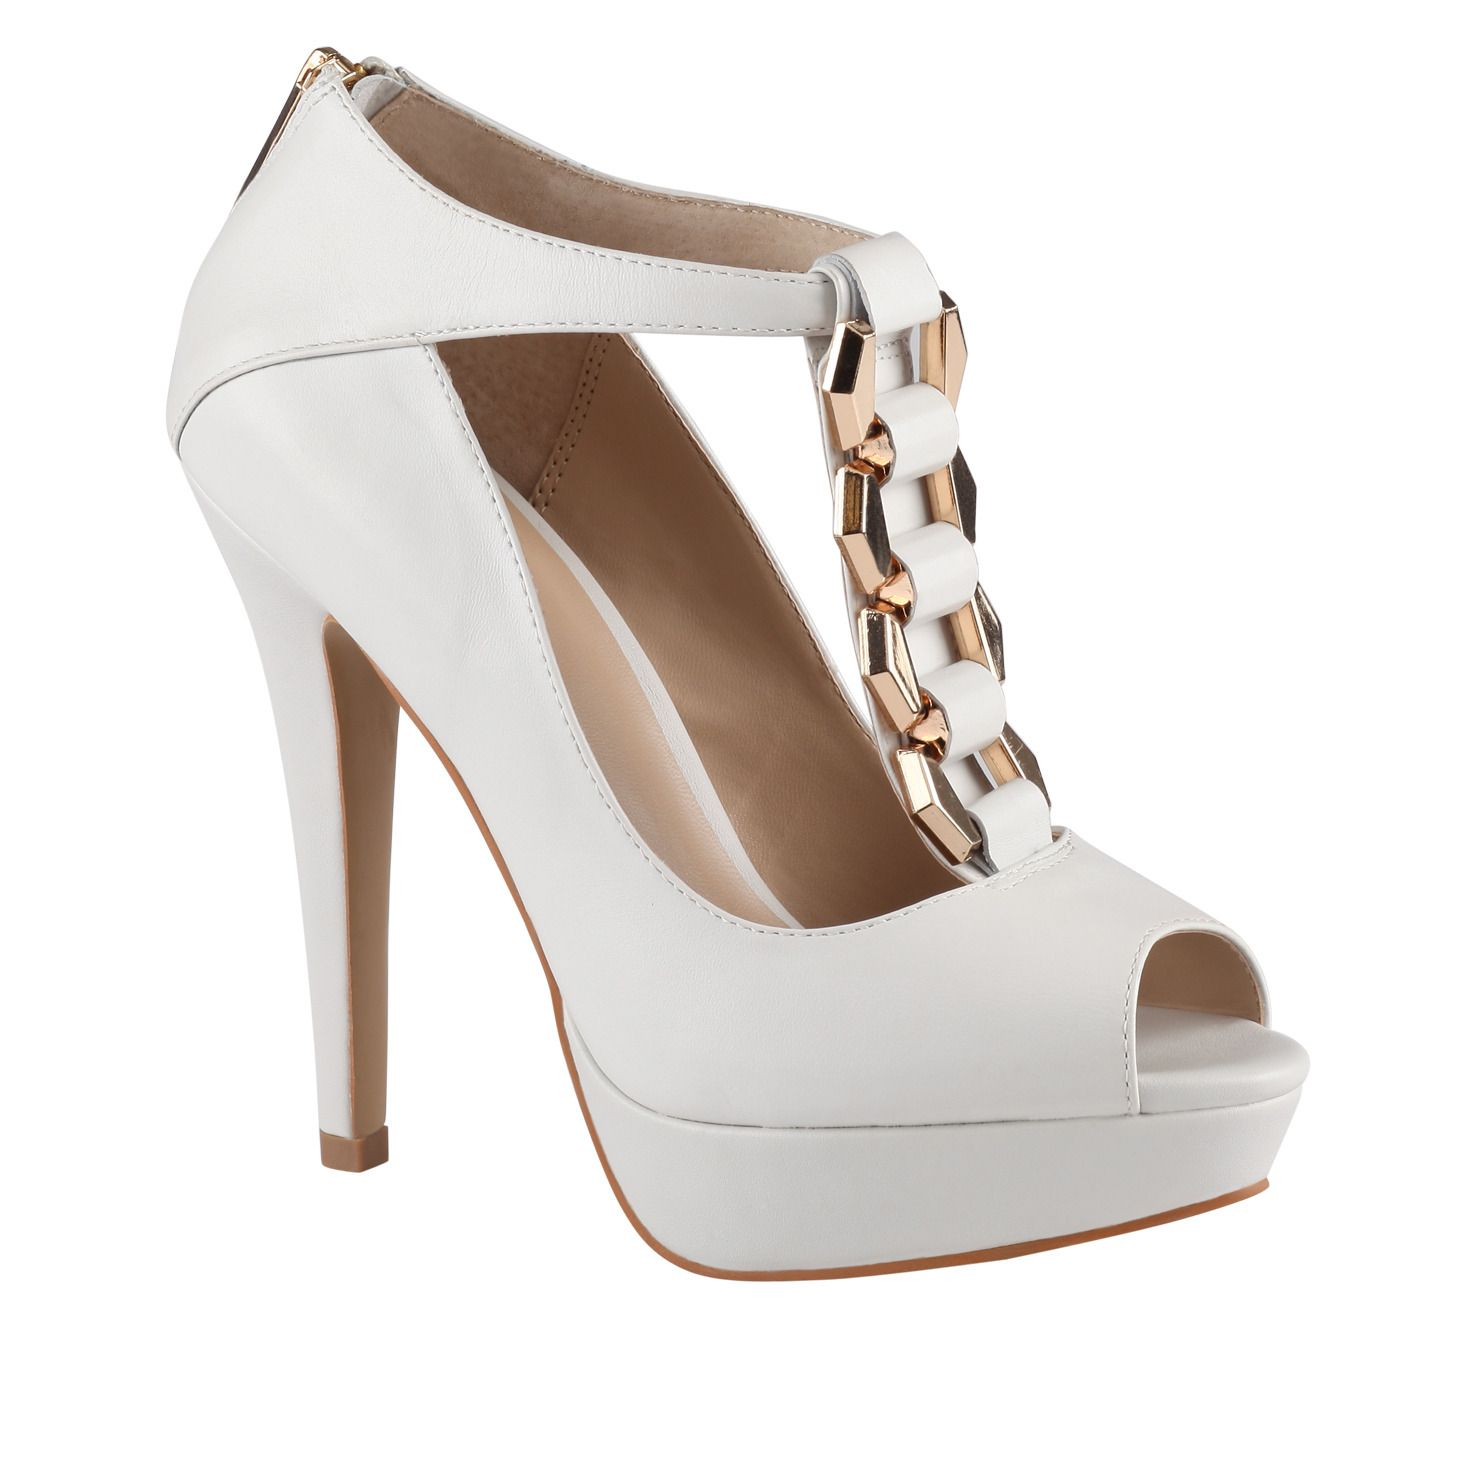 aldo shoes women 70 to 80 old